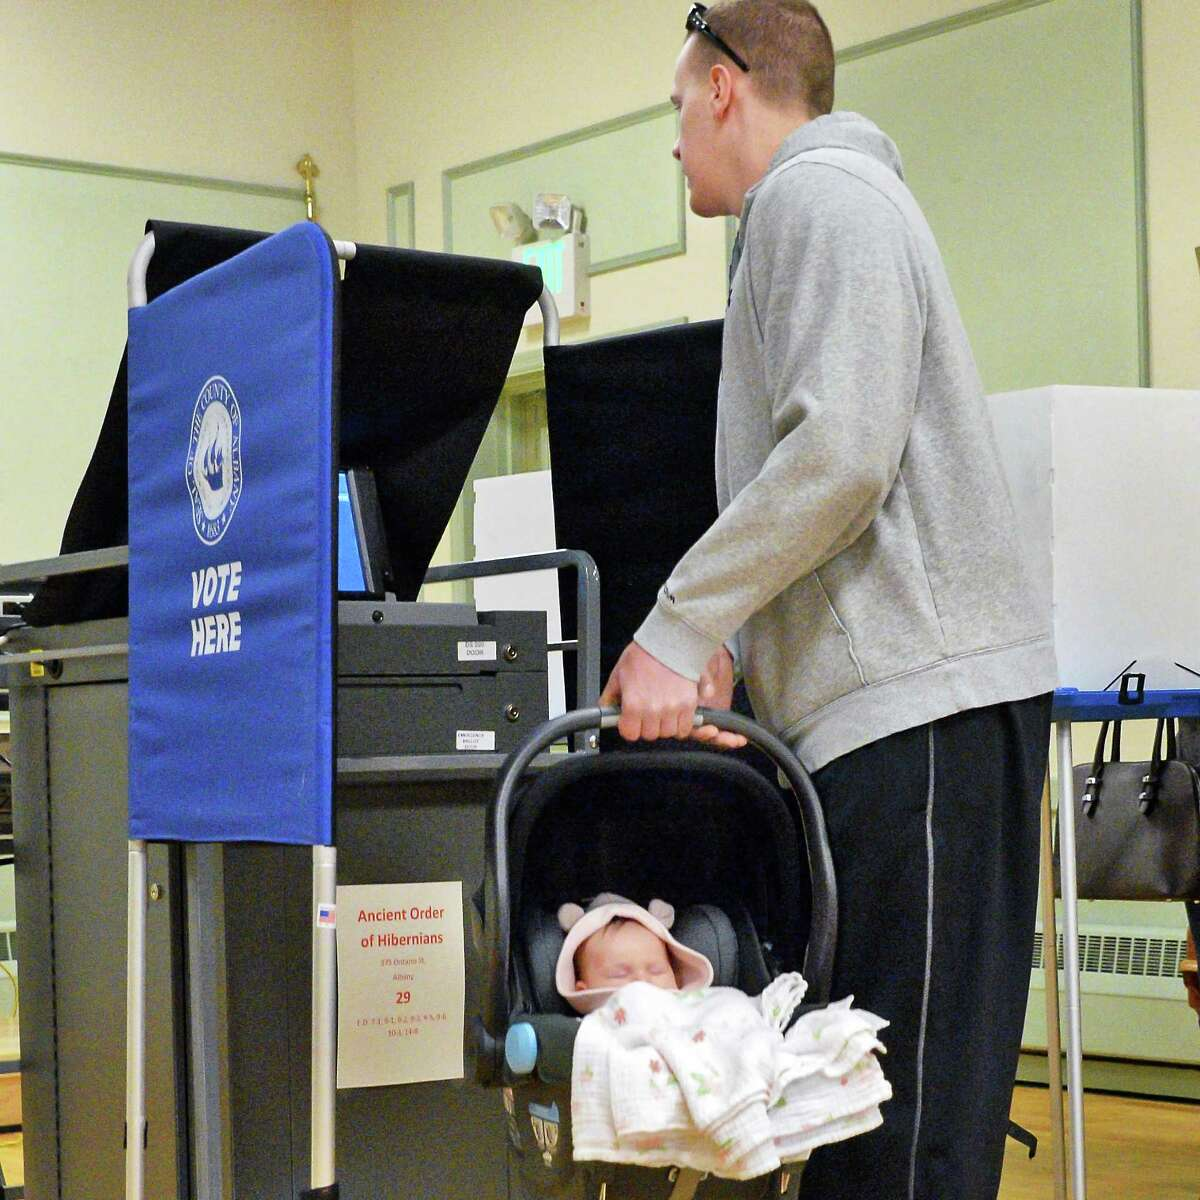 Ryan Lawson cries his 2-month-old daughter Beatrice Lawson as he casts his vote in the New York presidential primary at the Ancient Order of Hibernians Tuesday April 19, 2016 in Albany,NY. (John Carl D'Annibale / Times Union)